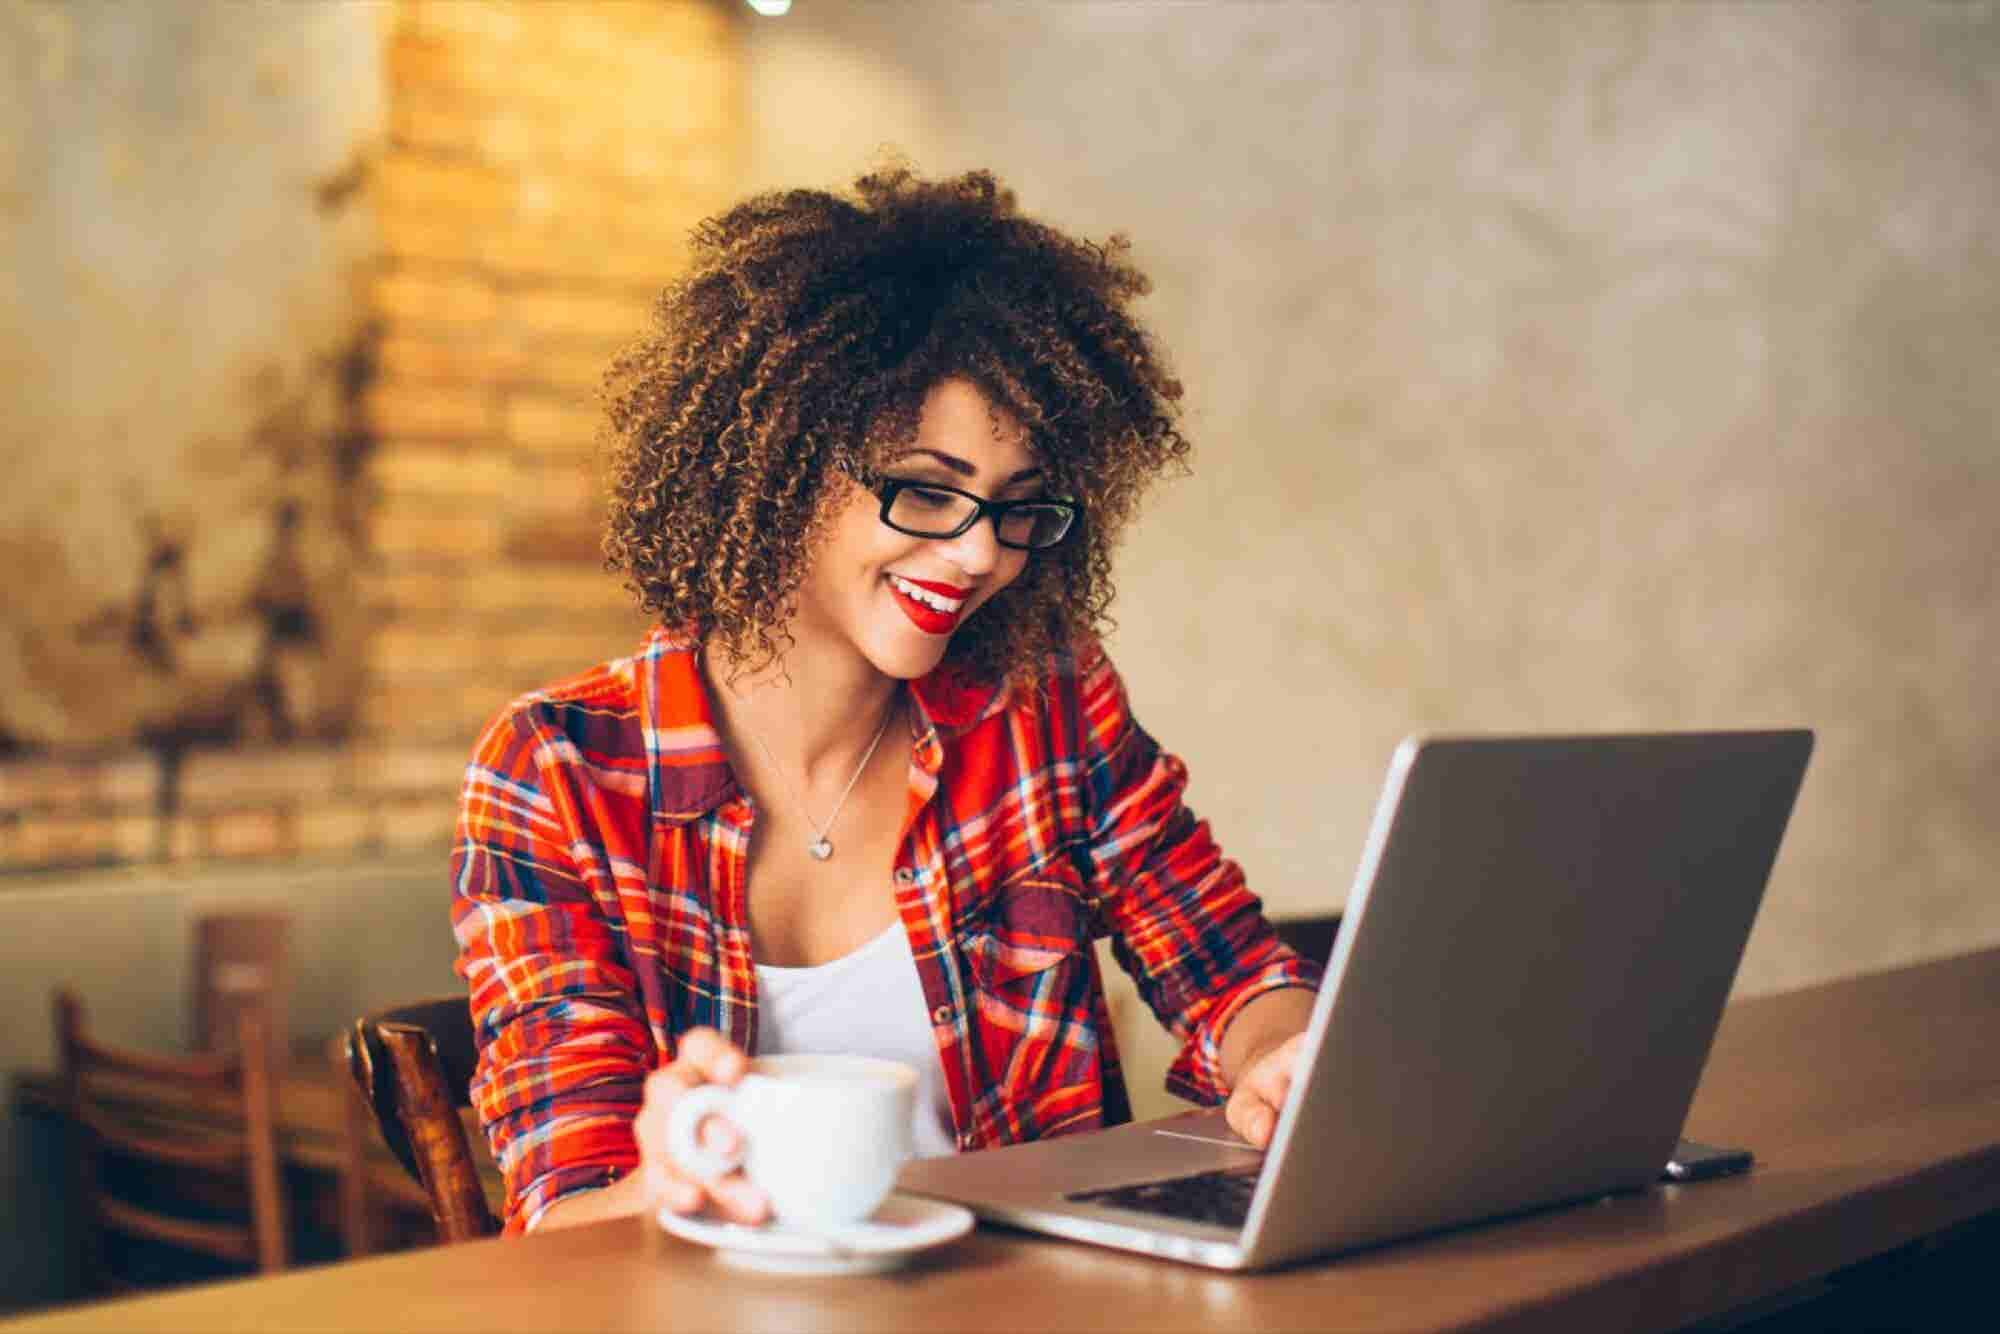 4 Totally Awesome Reasons It's Great to Be a Solopreneur